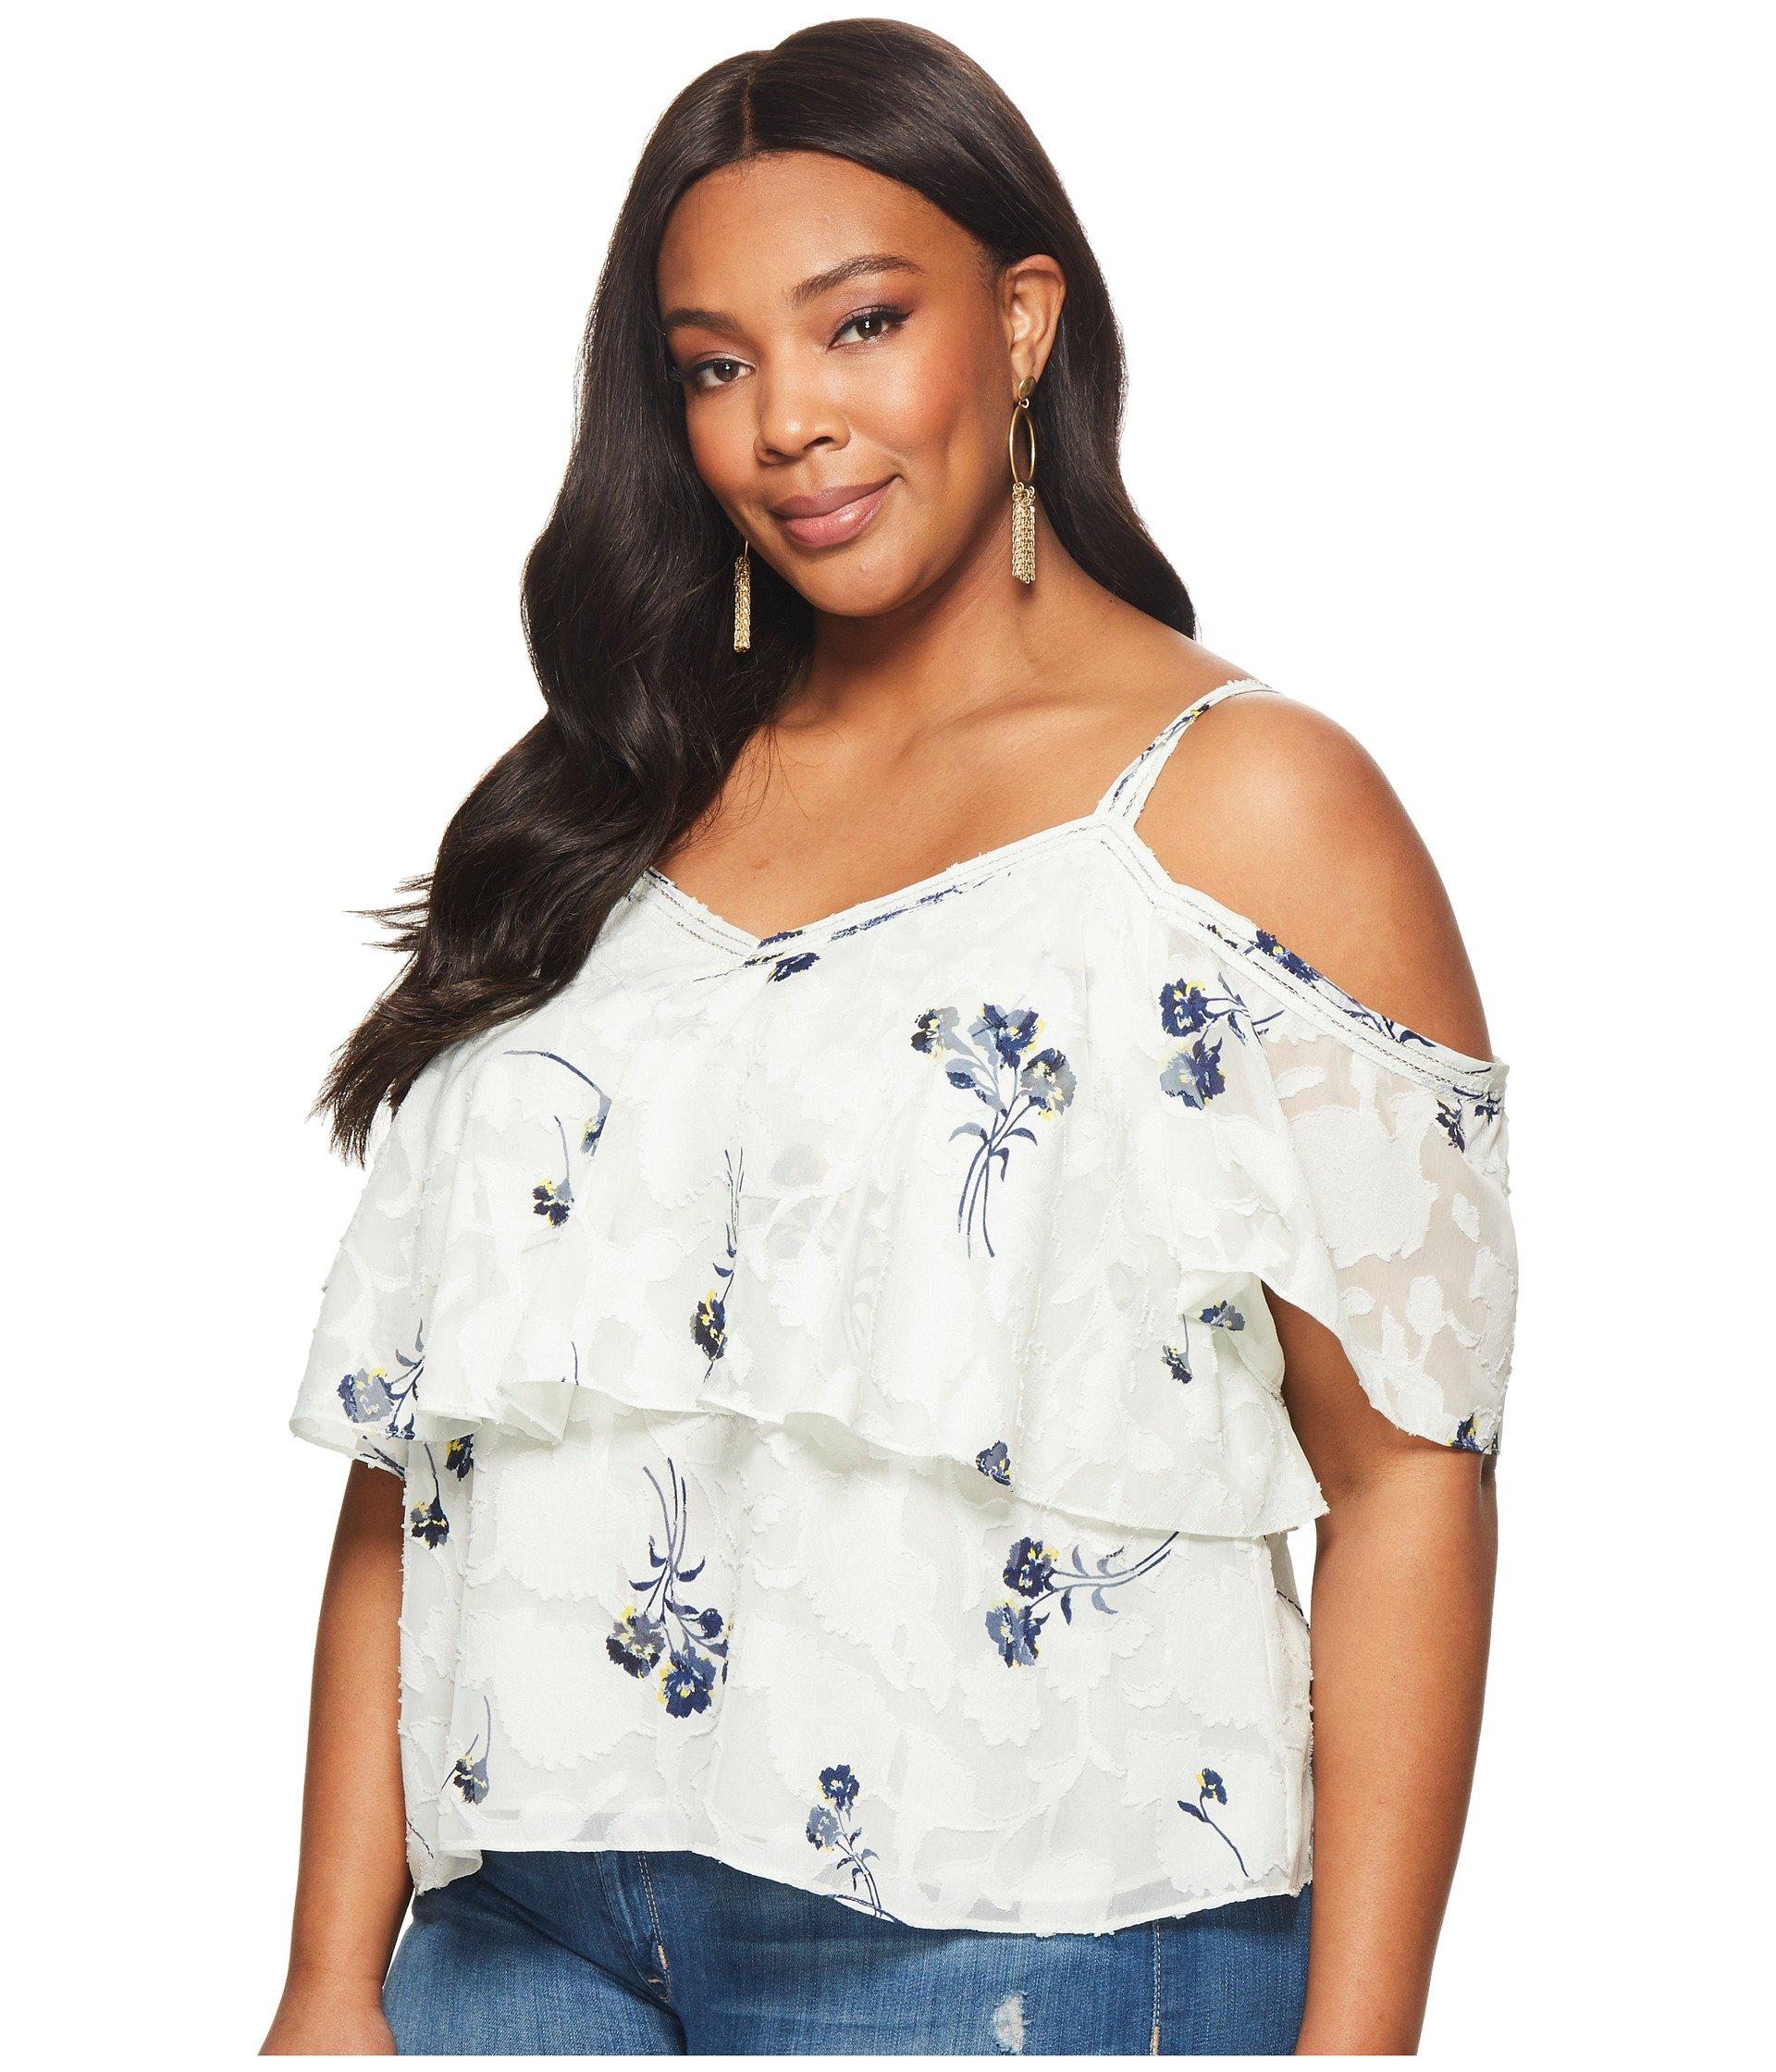 c053617a33b5a Lyst - Lucky Brand Plus Size Floral Cold Shoulder Top - Save 23%